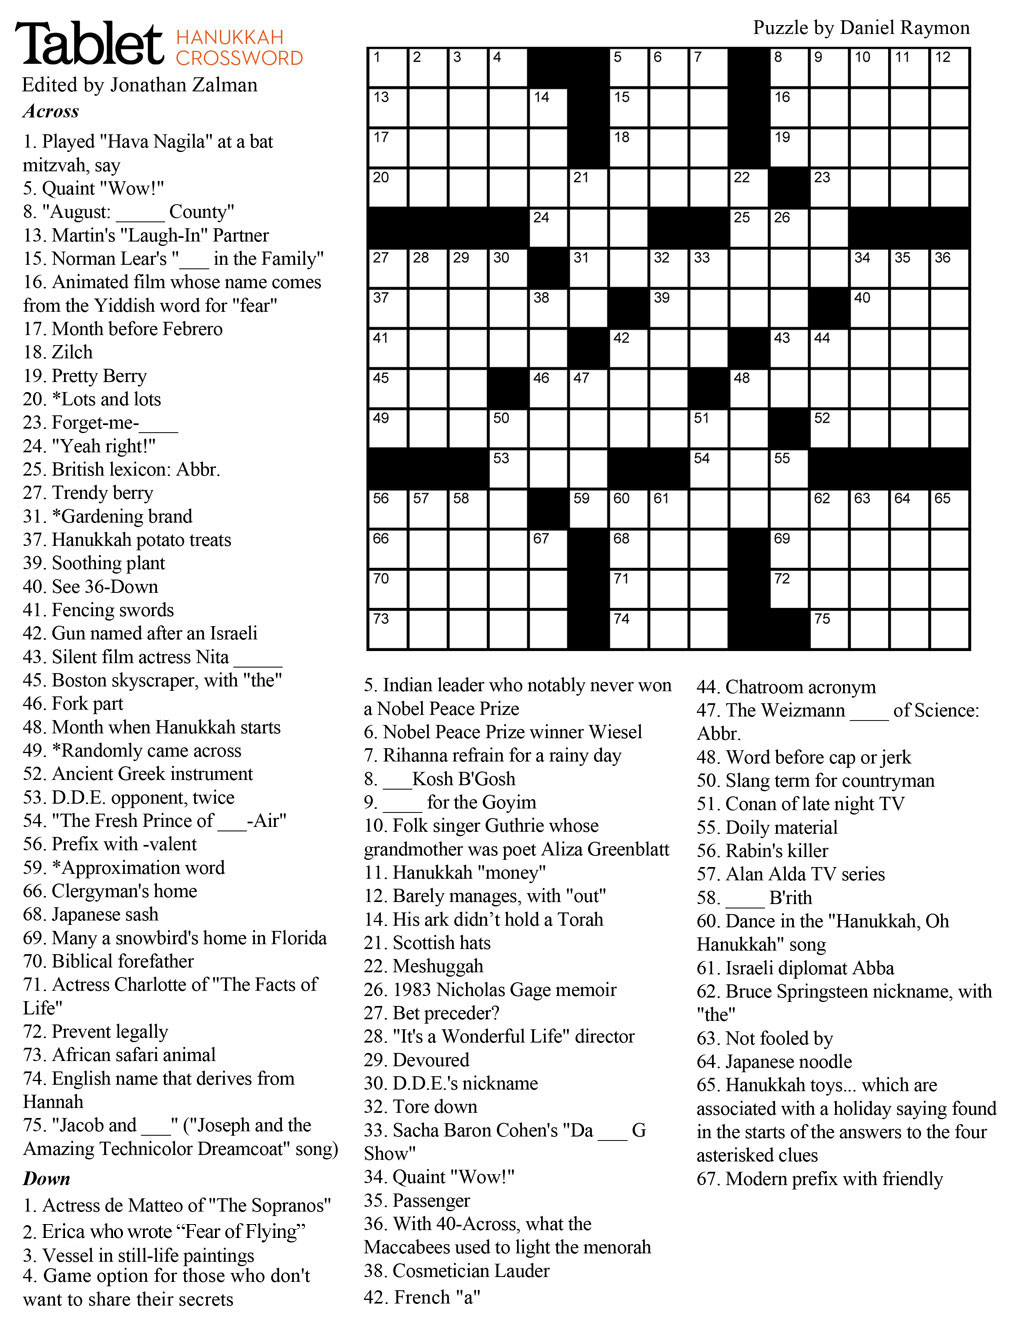 Wind Down With Our Hanukkah Crossword Puzzle! – Tablet Magazine - Printable Crossword Puzzles For Middle School Students